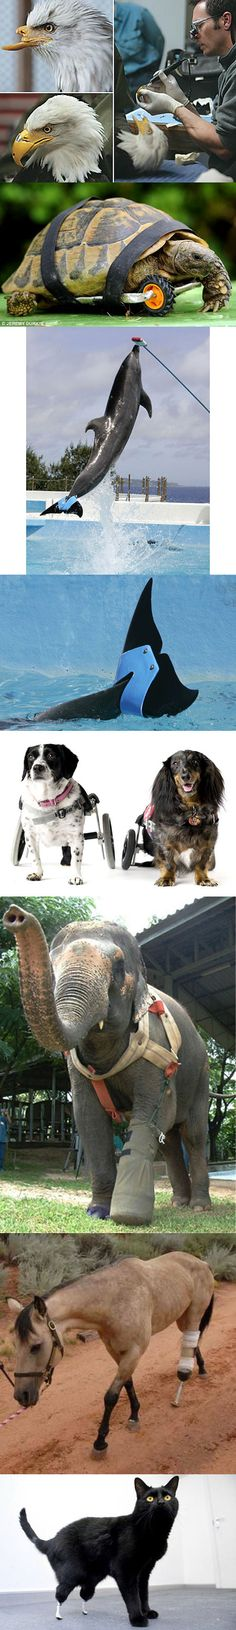 prosthetics & orthotics, not just for humans anymore!